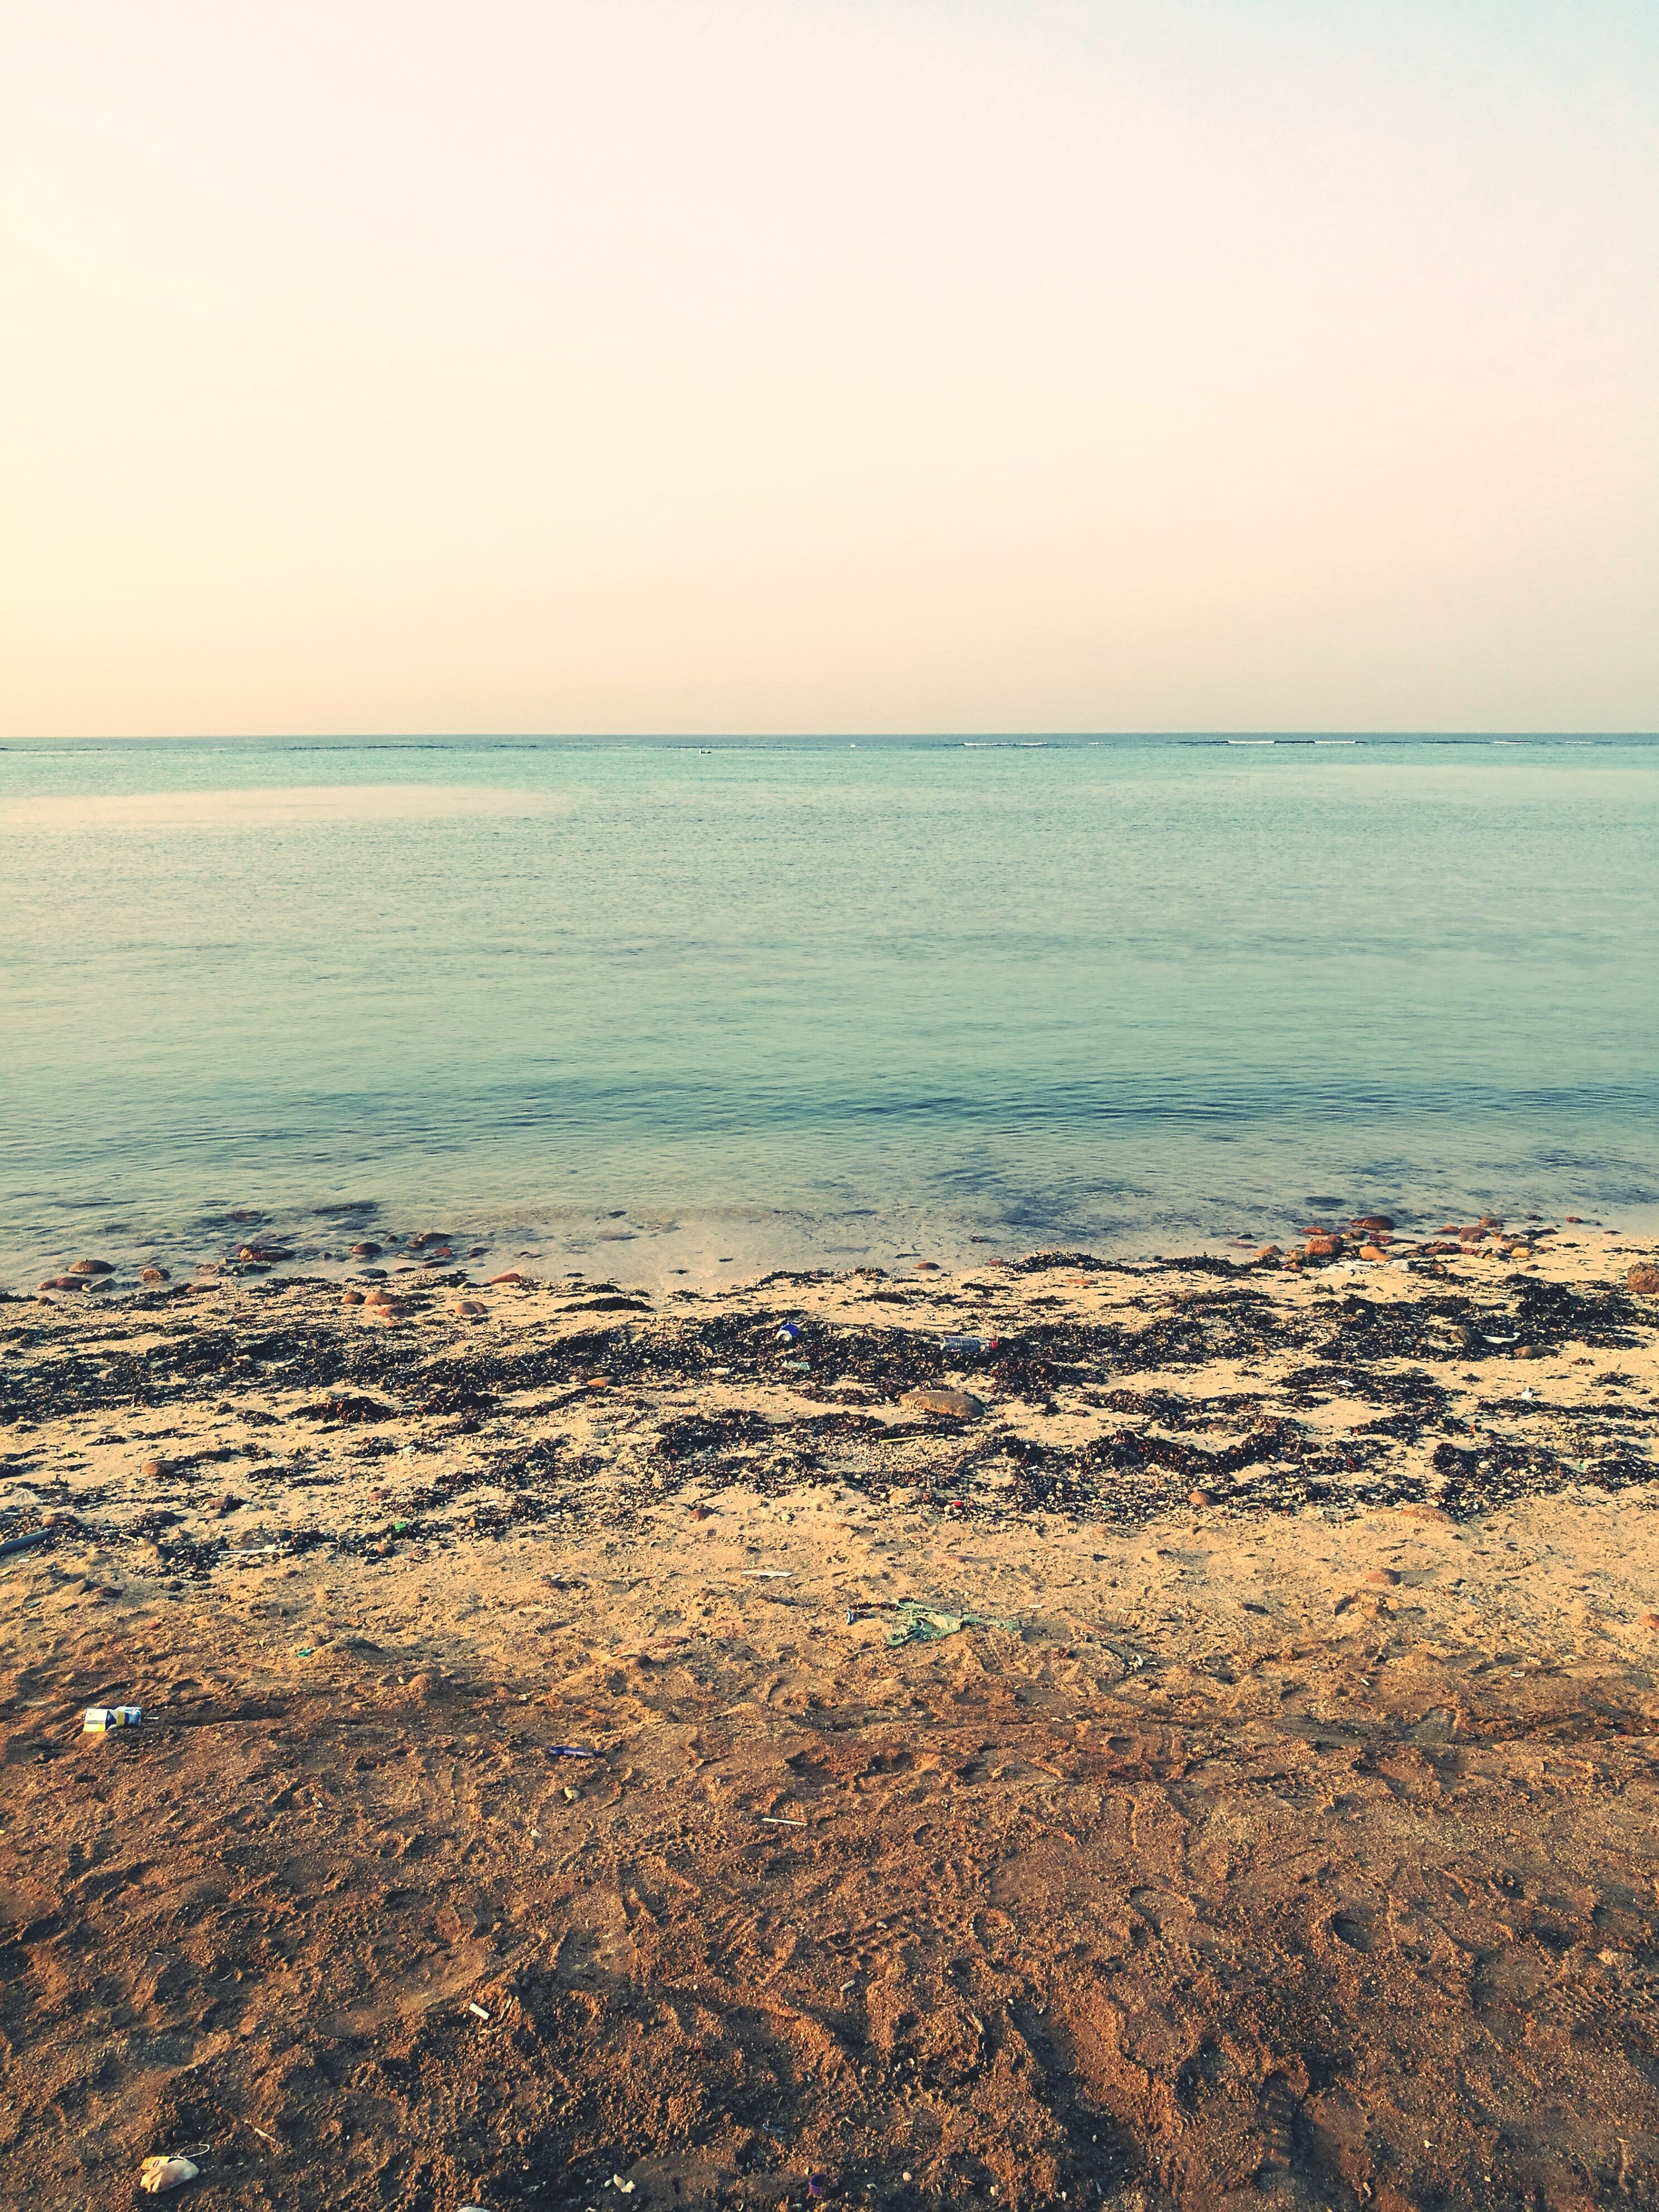 sea, nature, horizon over water, beach, scenics, clear sky, beauty in nature, water, sky, tranquil scene, tranquility, outdoors, no people, day, sand